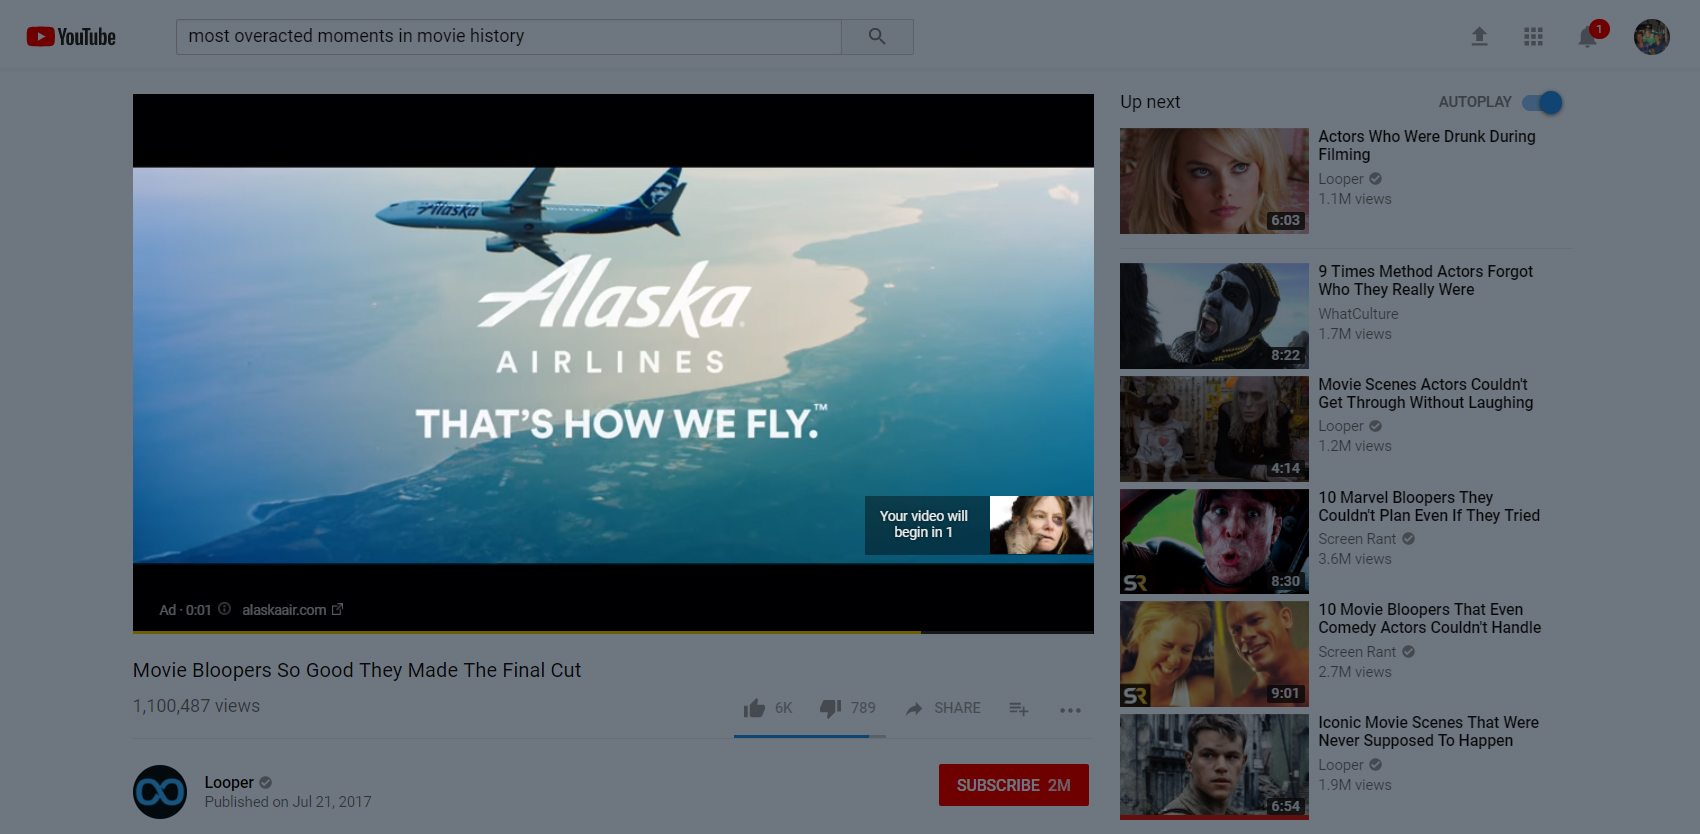 What You Should Know About YouTube Display Advertising